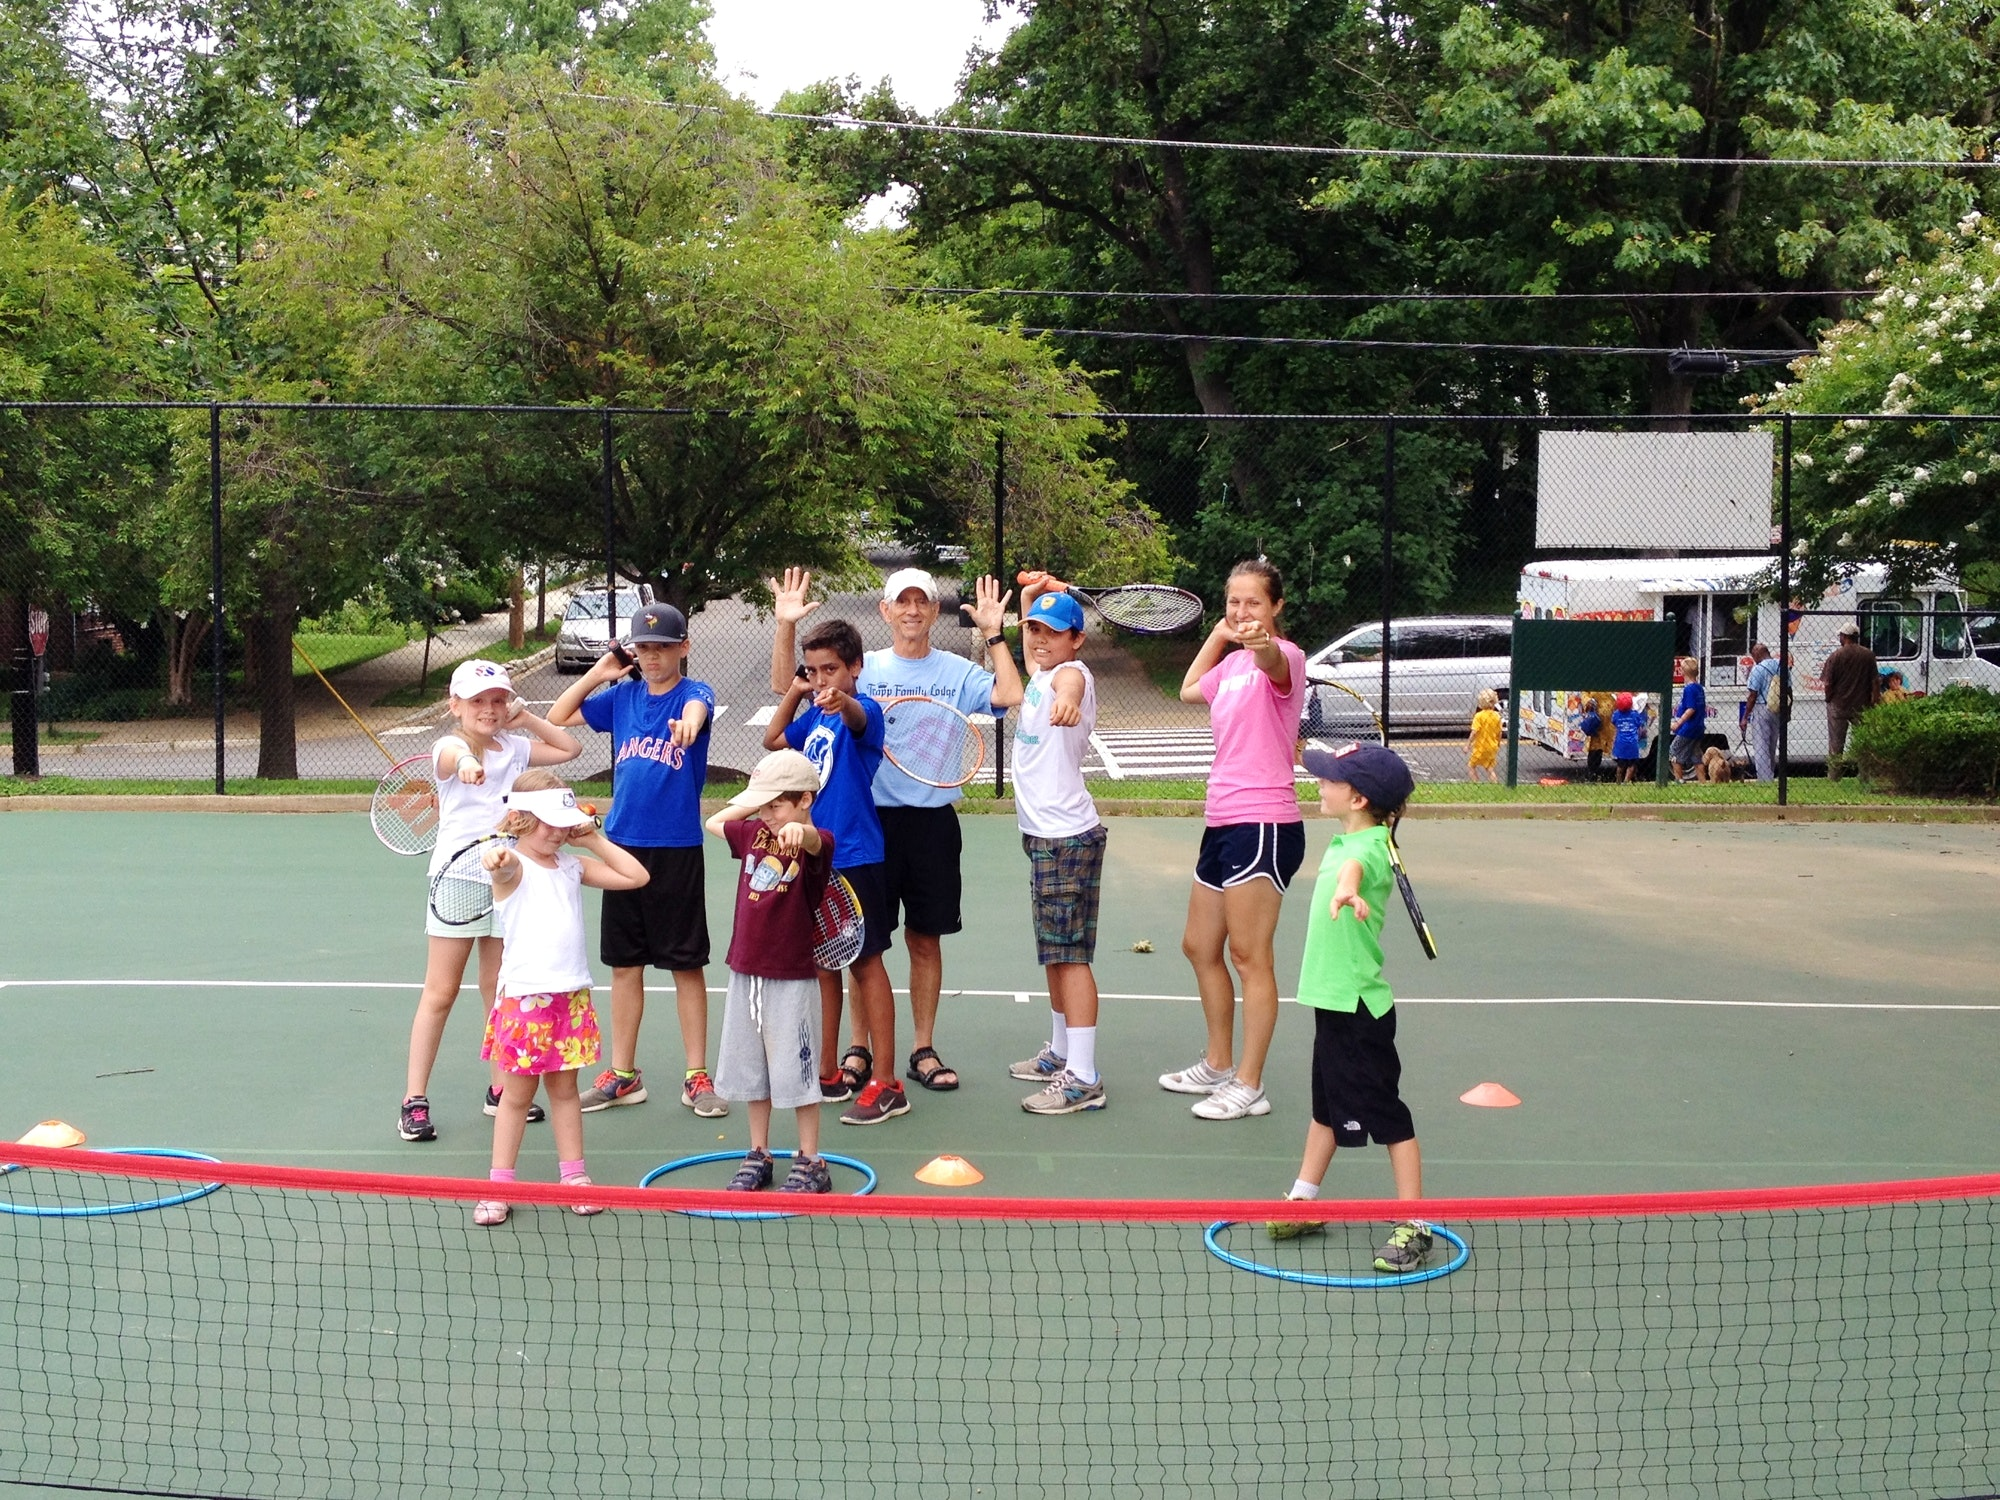 Ernie C. teaches tennis lessons in Arlington, VA